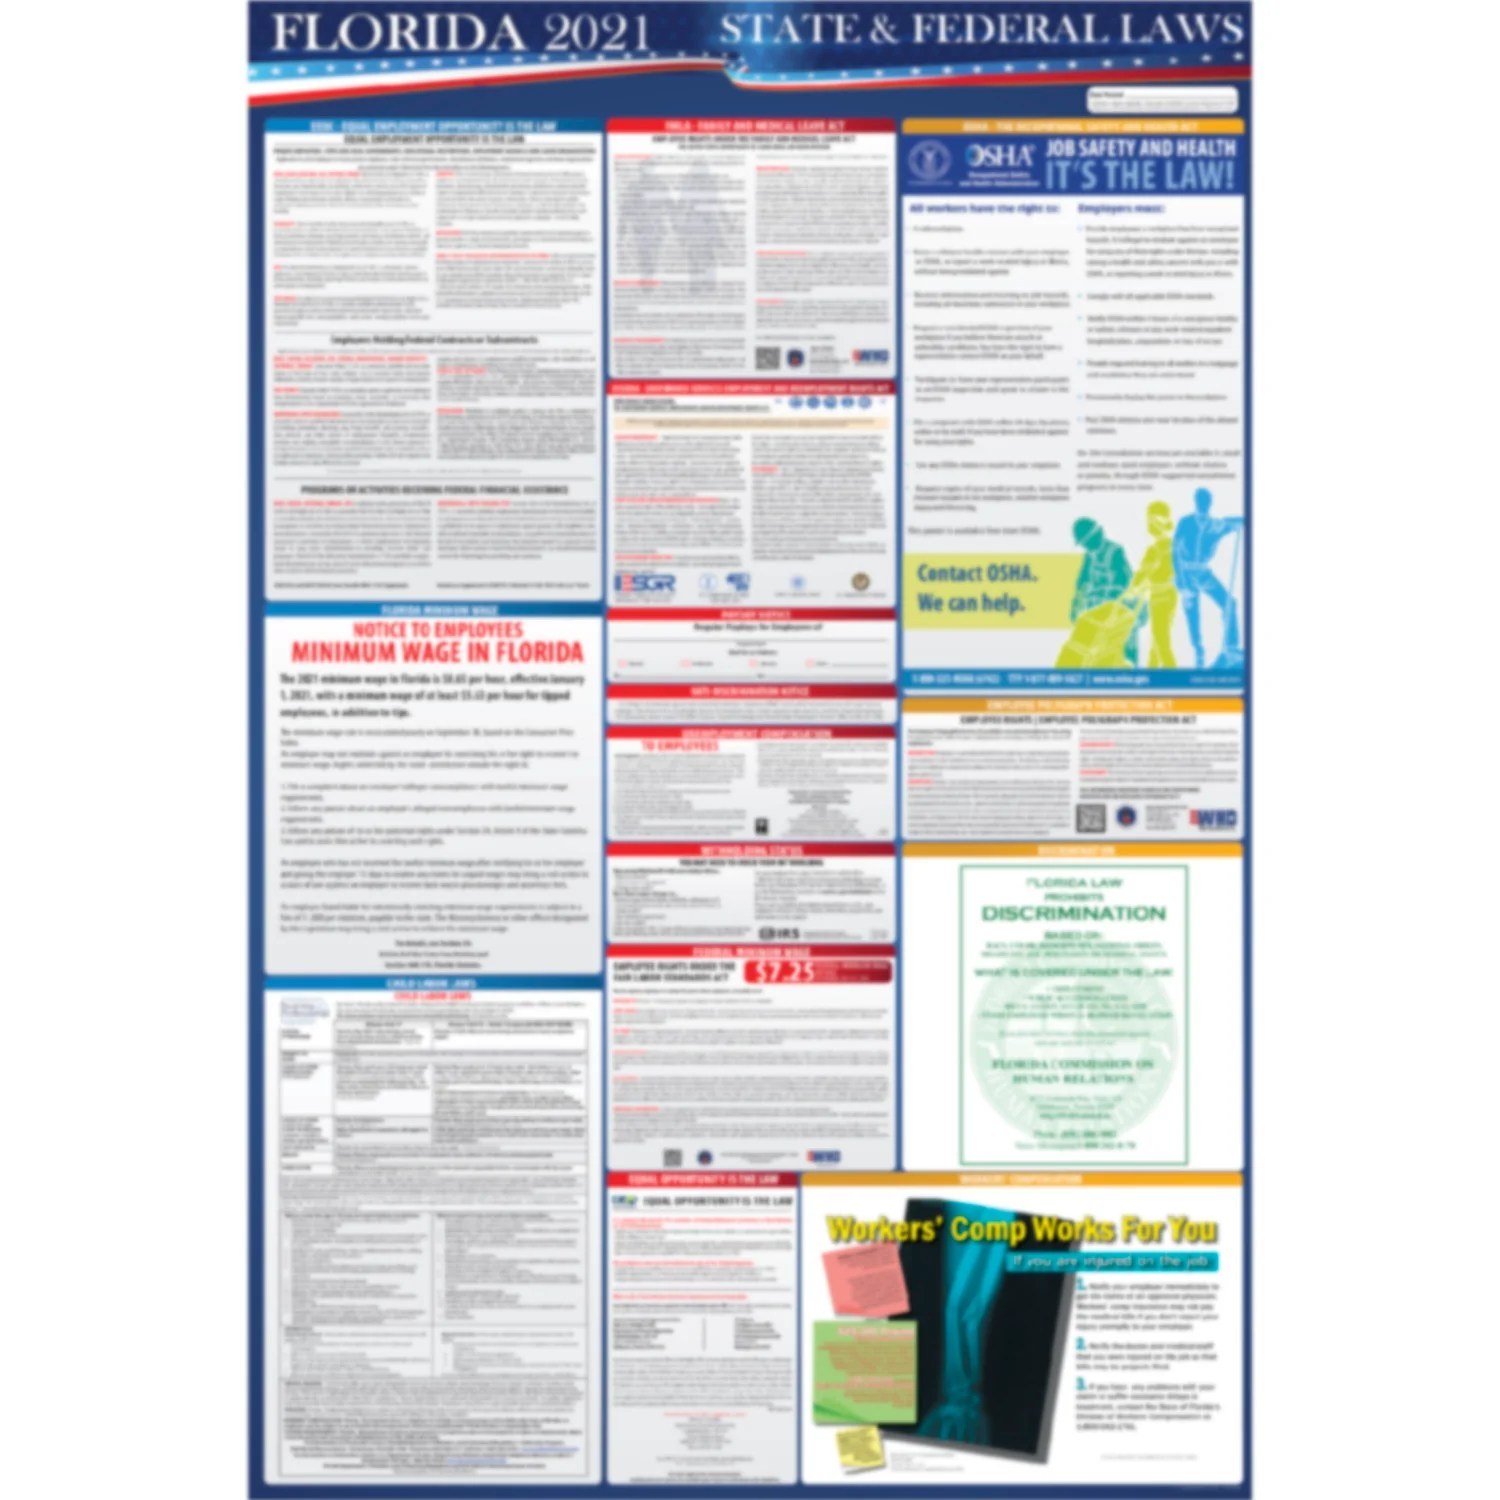 2021 florida state and federal labor laws poster osha workplace compliant 24